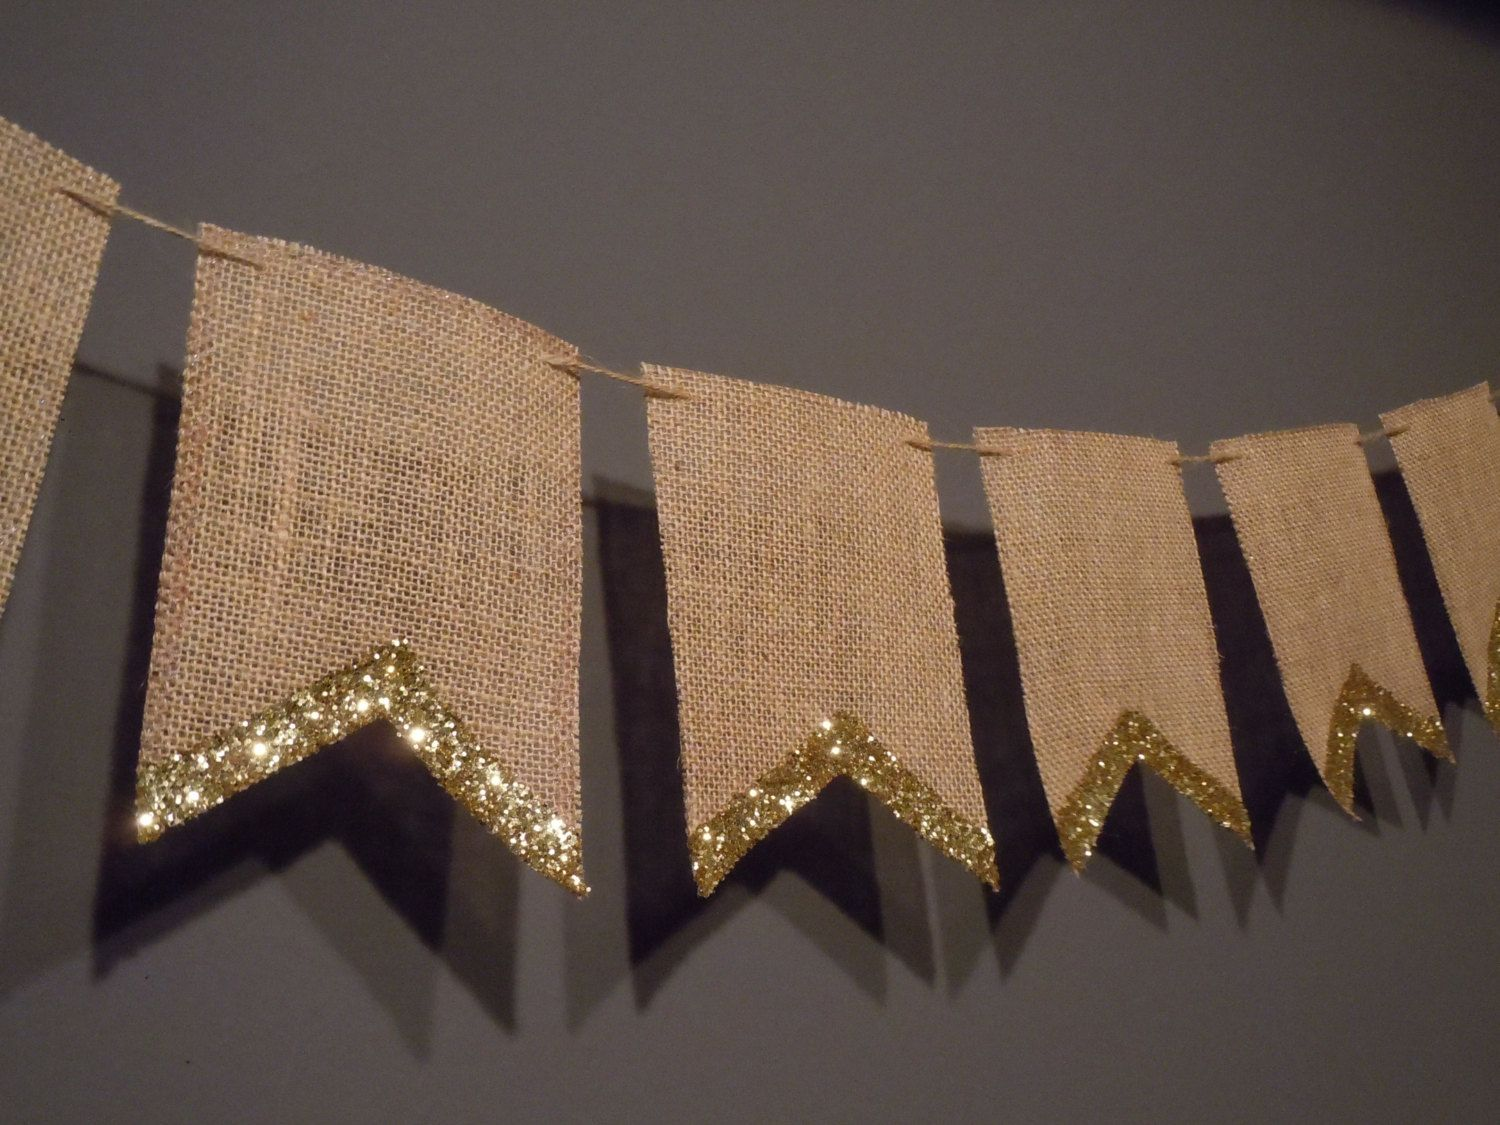 25 Unique Burlap Pennant Ideas On Pinterest